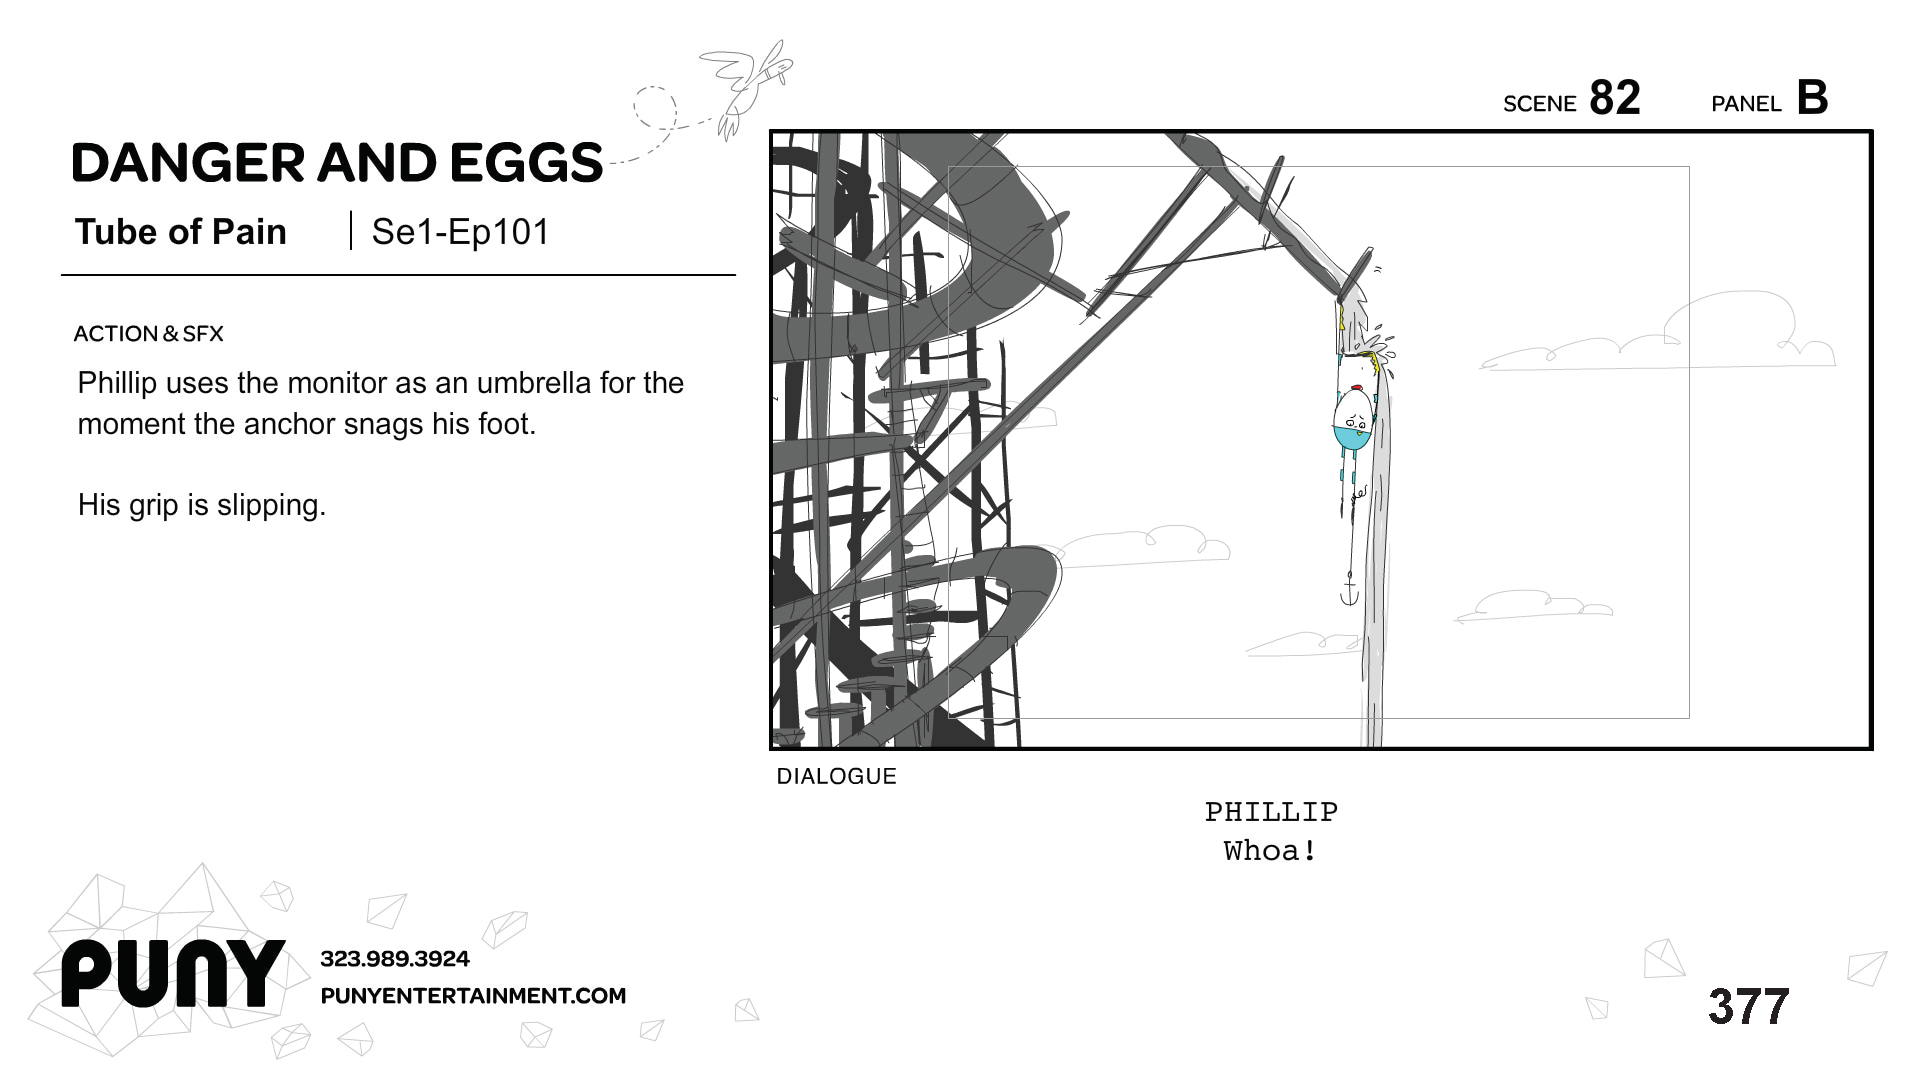 MikeOwens_STORYBOARDS_DangerAndEggs_Page_272.png